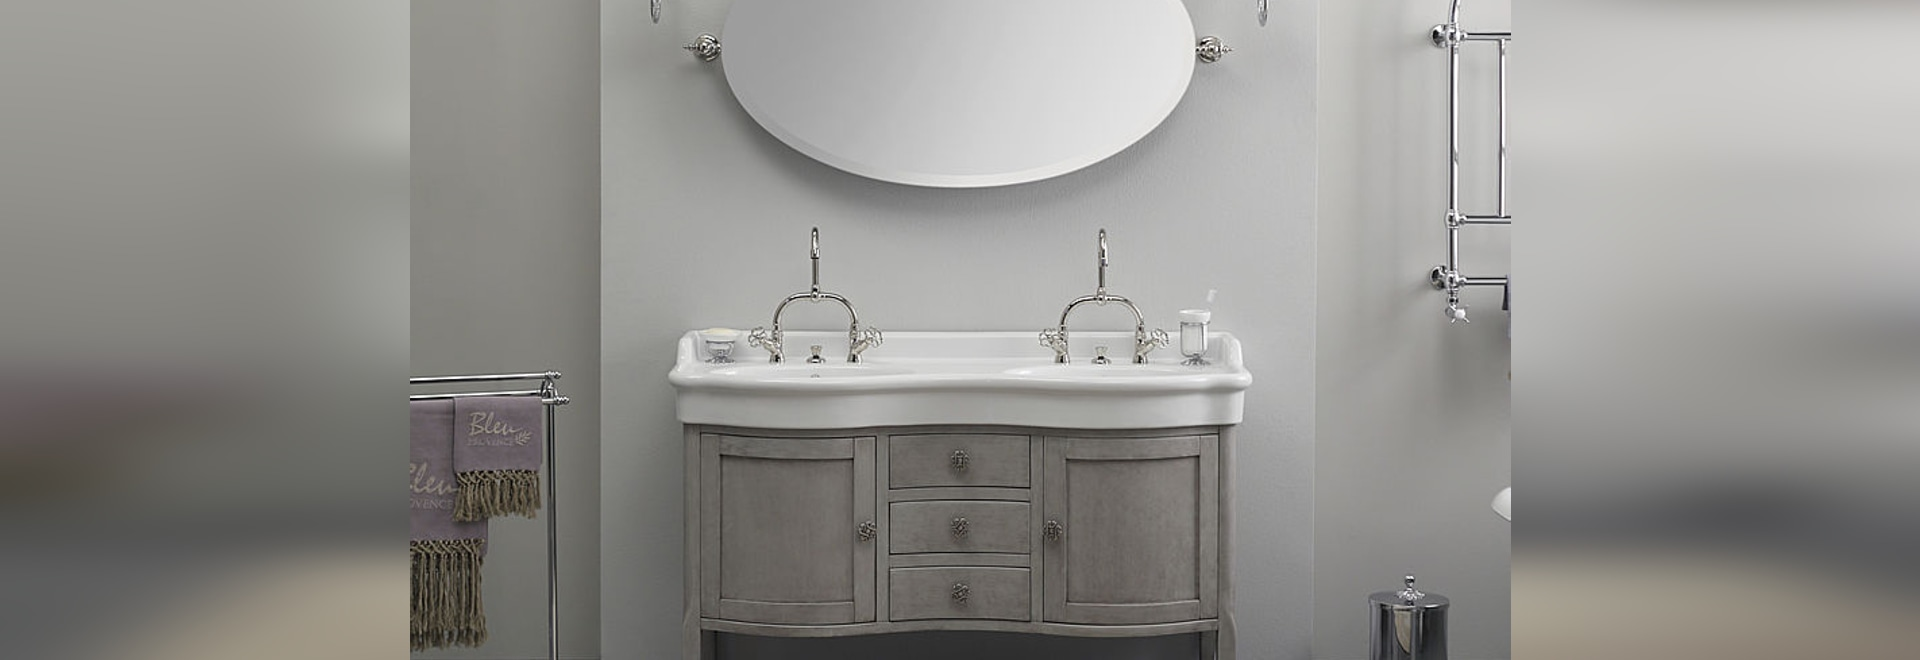 Beautiful double basin in ceramic on a classic style wood furniture